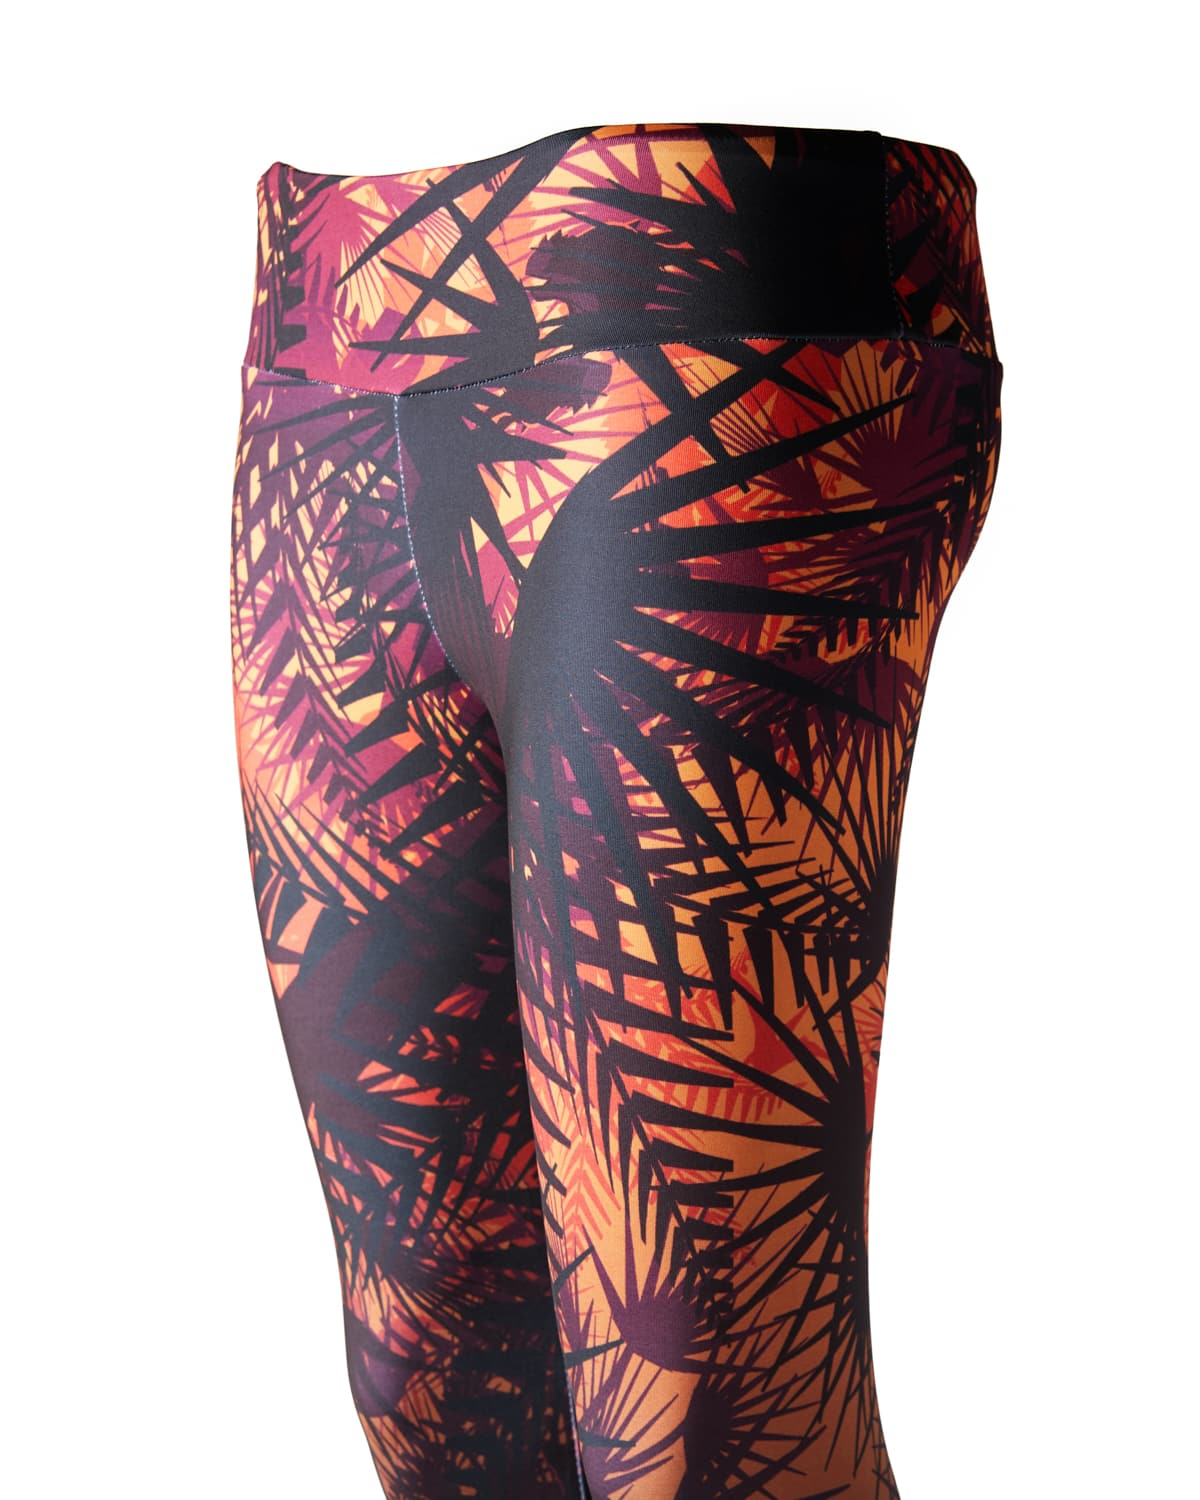 Lost Lands 'Foliage' Leggings (Orange)